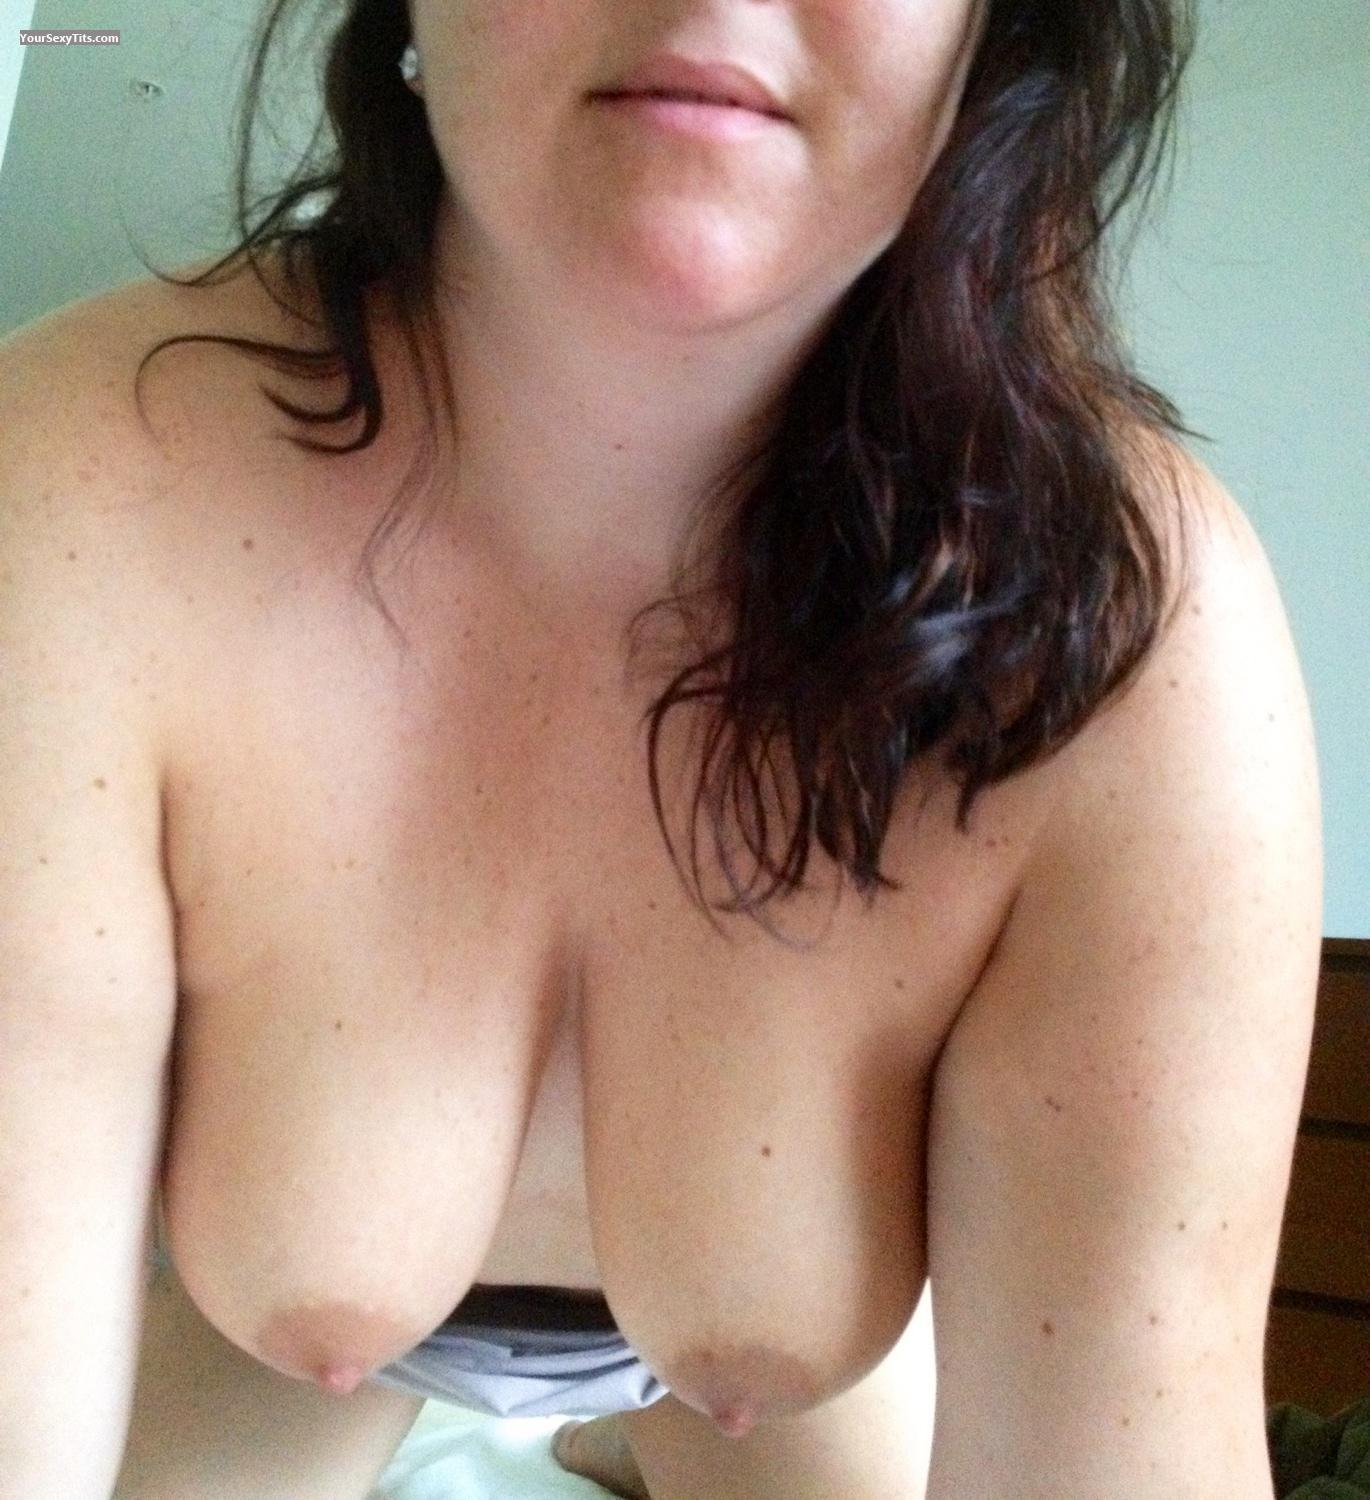 Tit Flash: Big Tits By IPhone - Kandk from United States